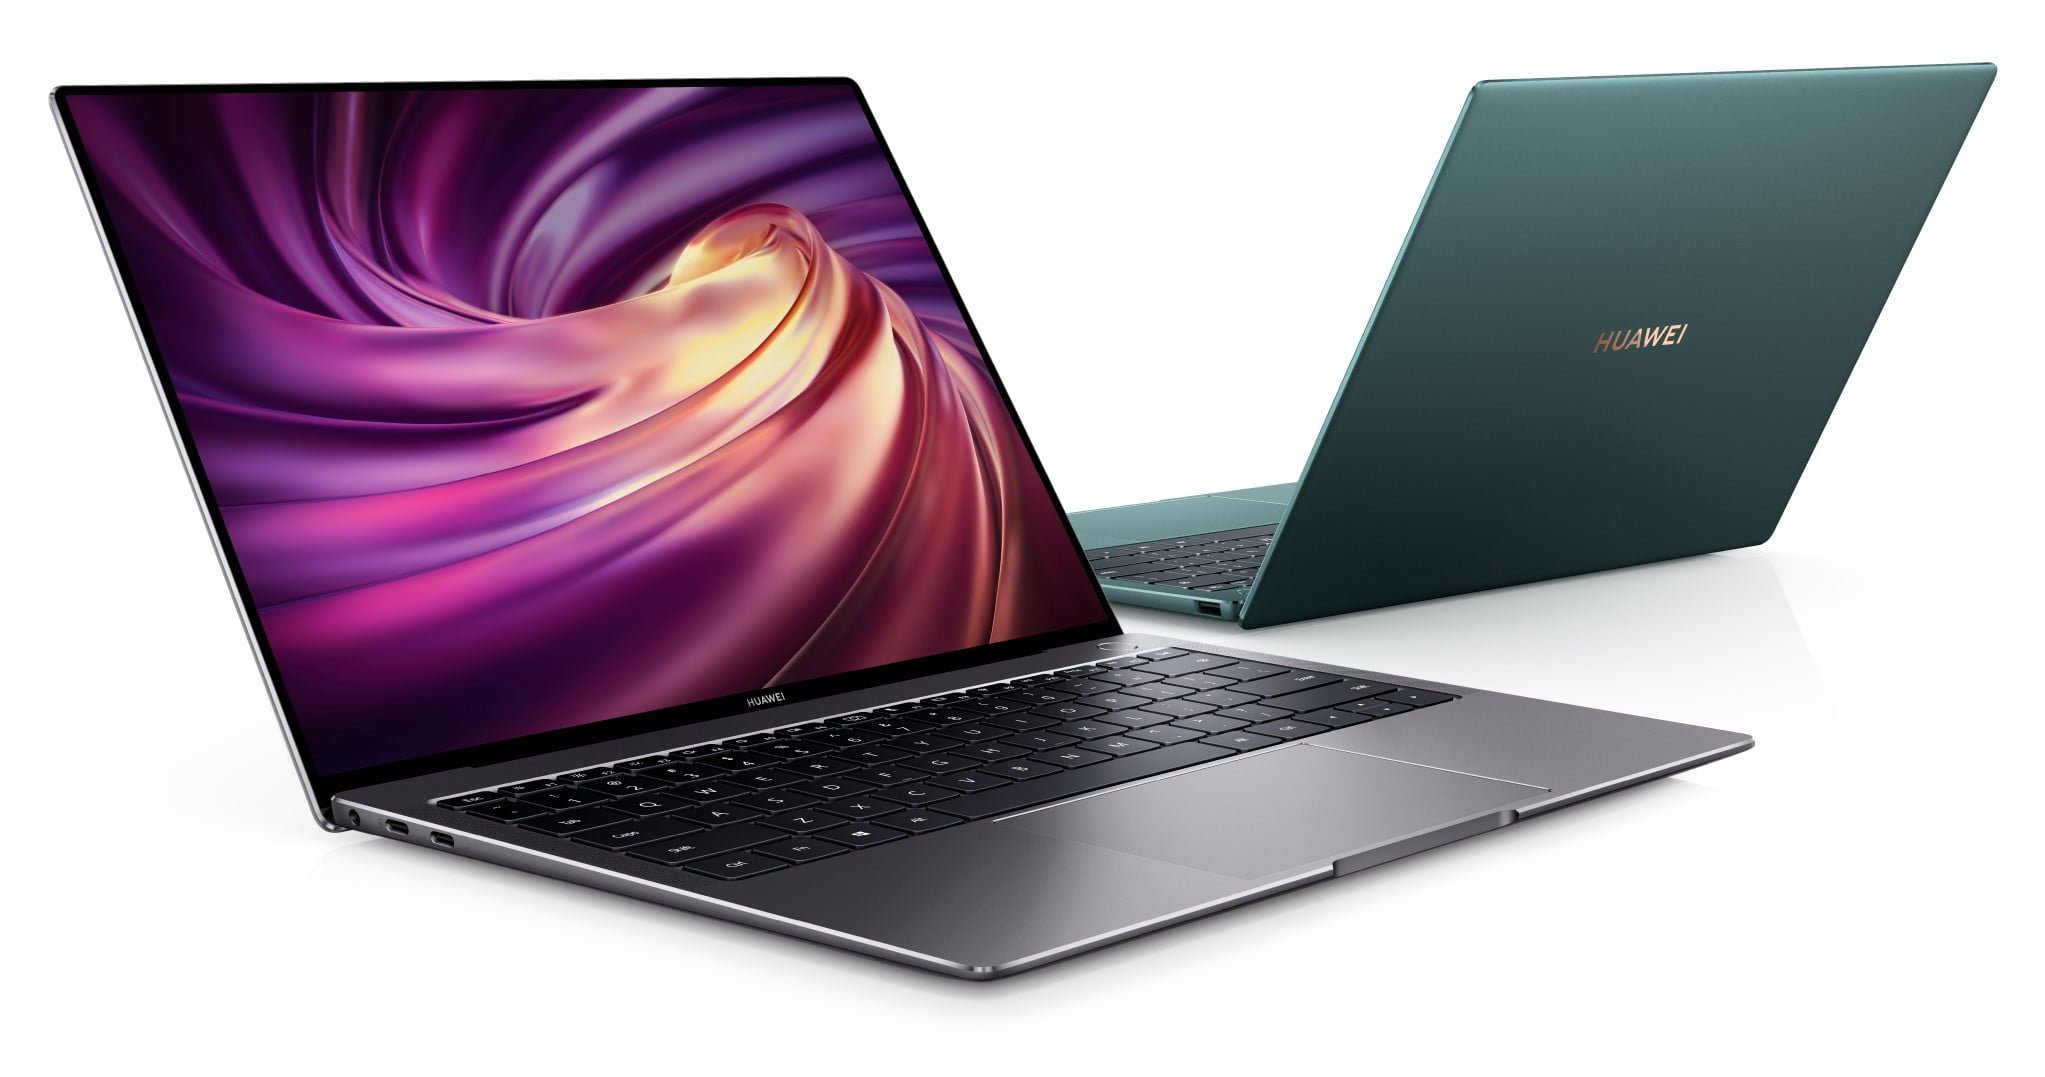 Huawei Matebook X Pro 2020 E Matebook 13 2020: Disponibili Da Oggi In Italia 4 - Hynerd.it